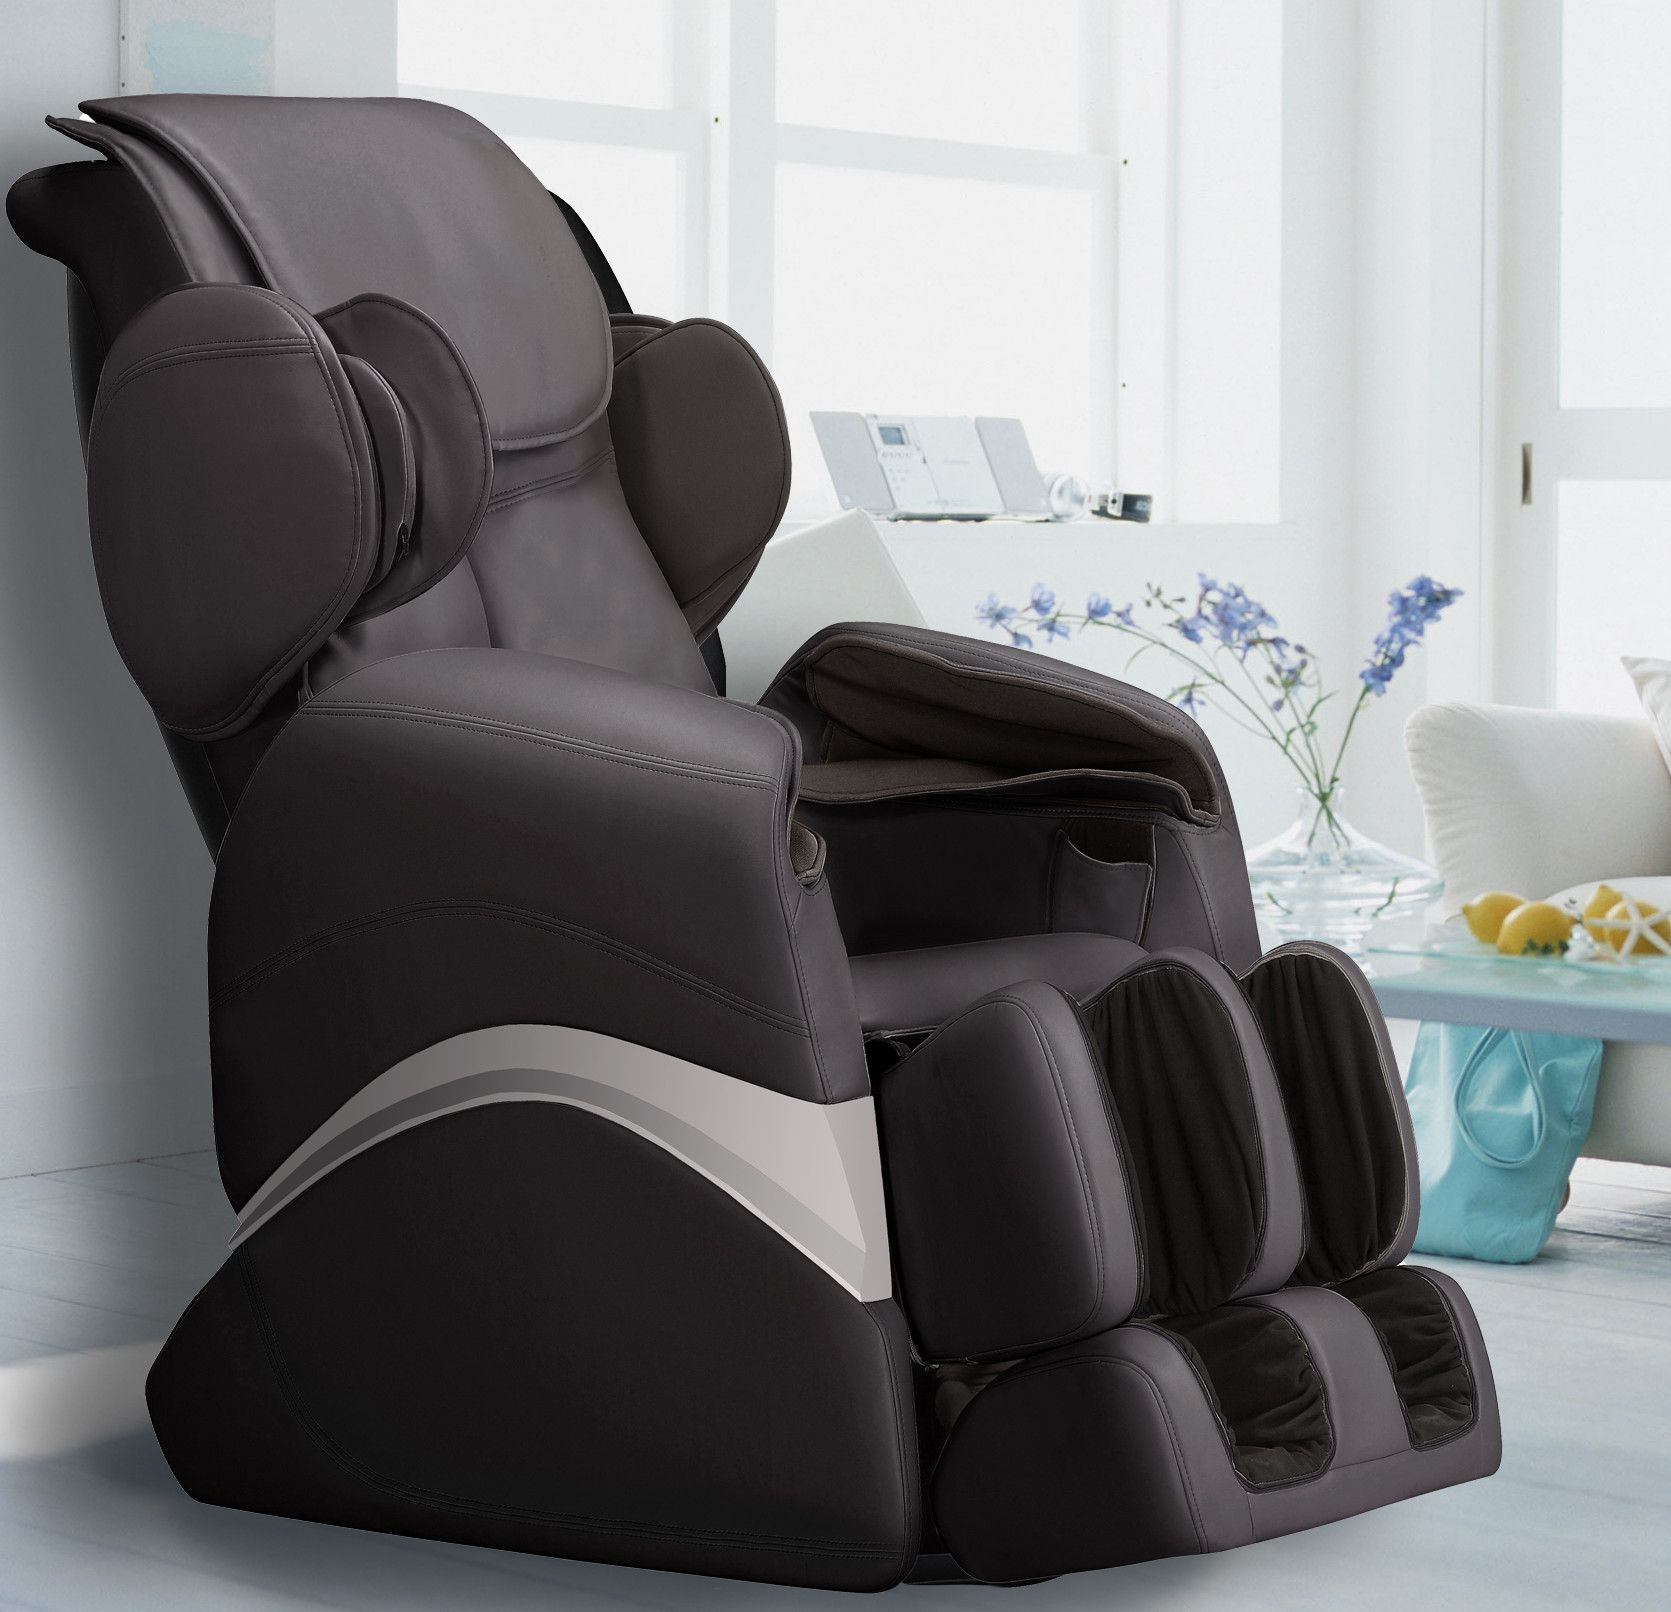 Faux Leather Zero Gravity Massage Chair with Ottoman